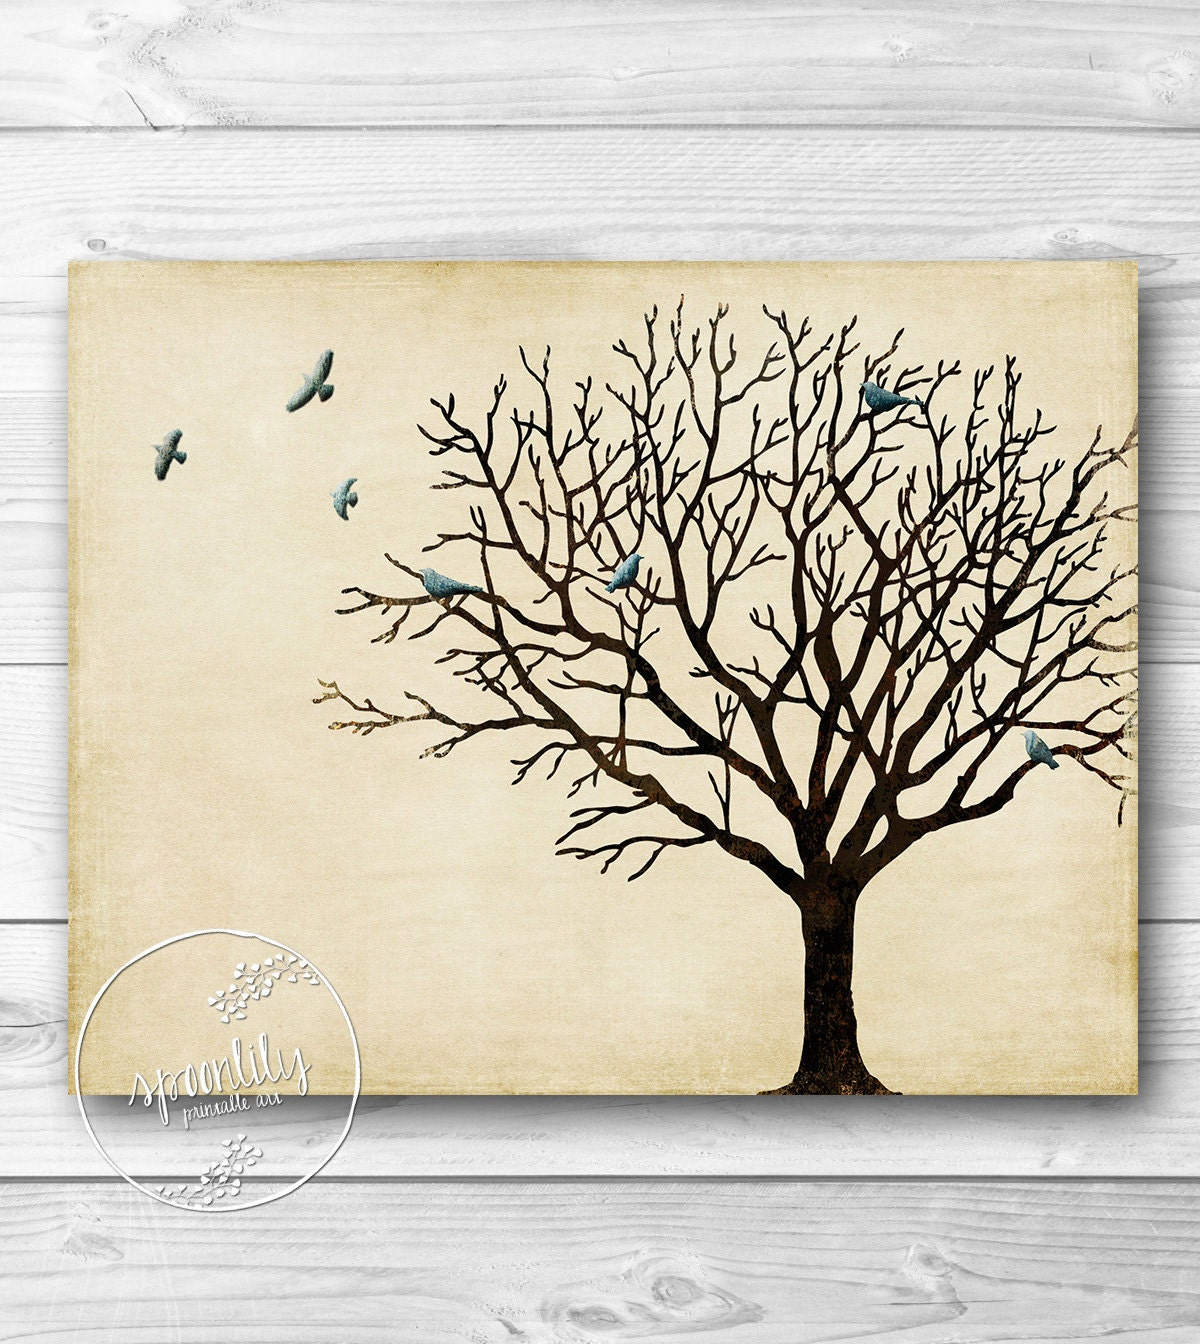 Tree wall art winter tree silhouette vintage by spoonlily - Vintage inspired wall art ...